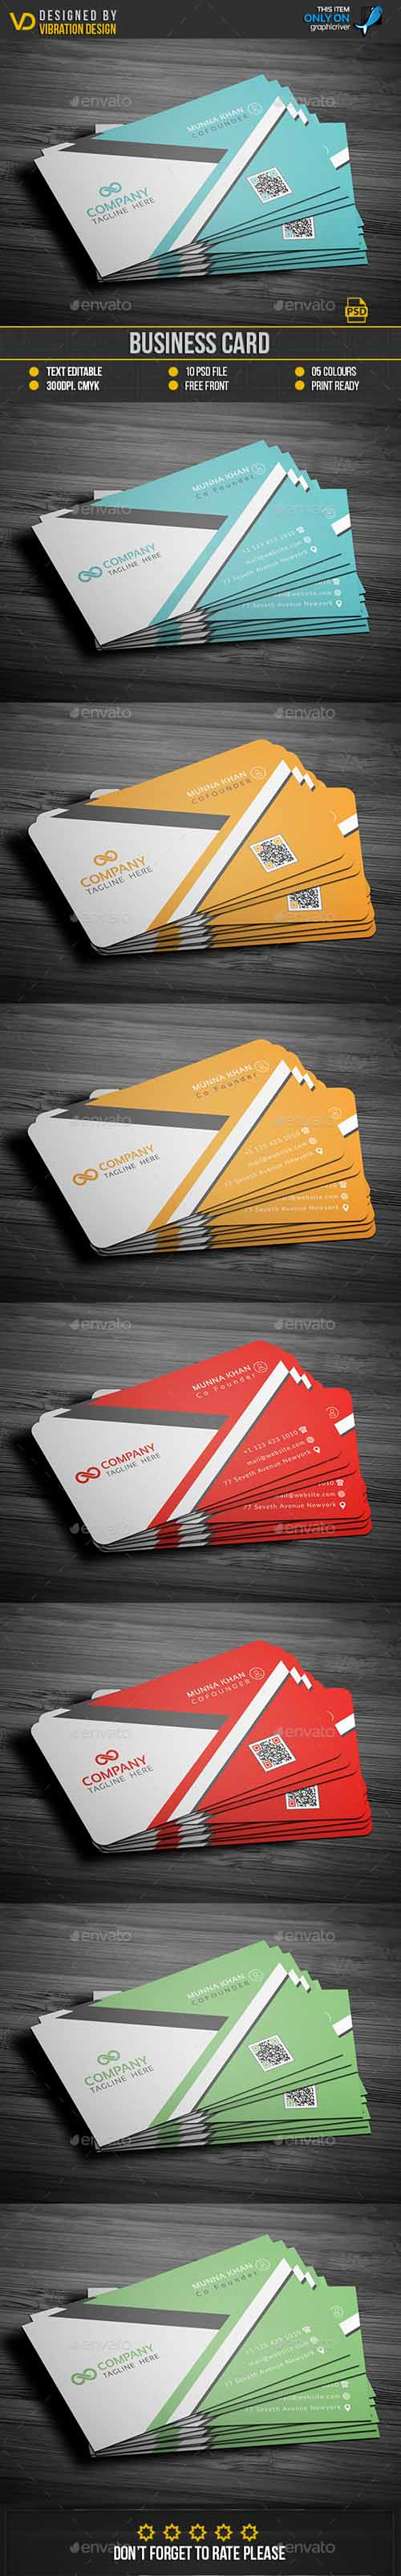 Business Card 19219852